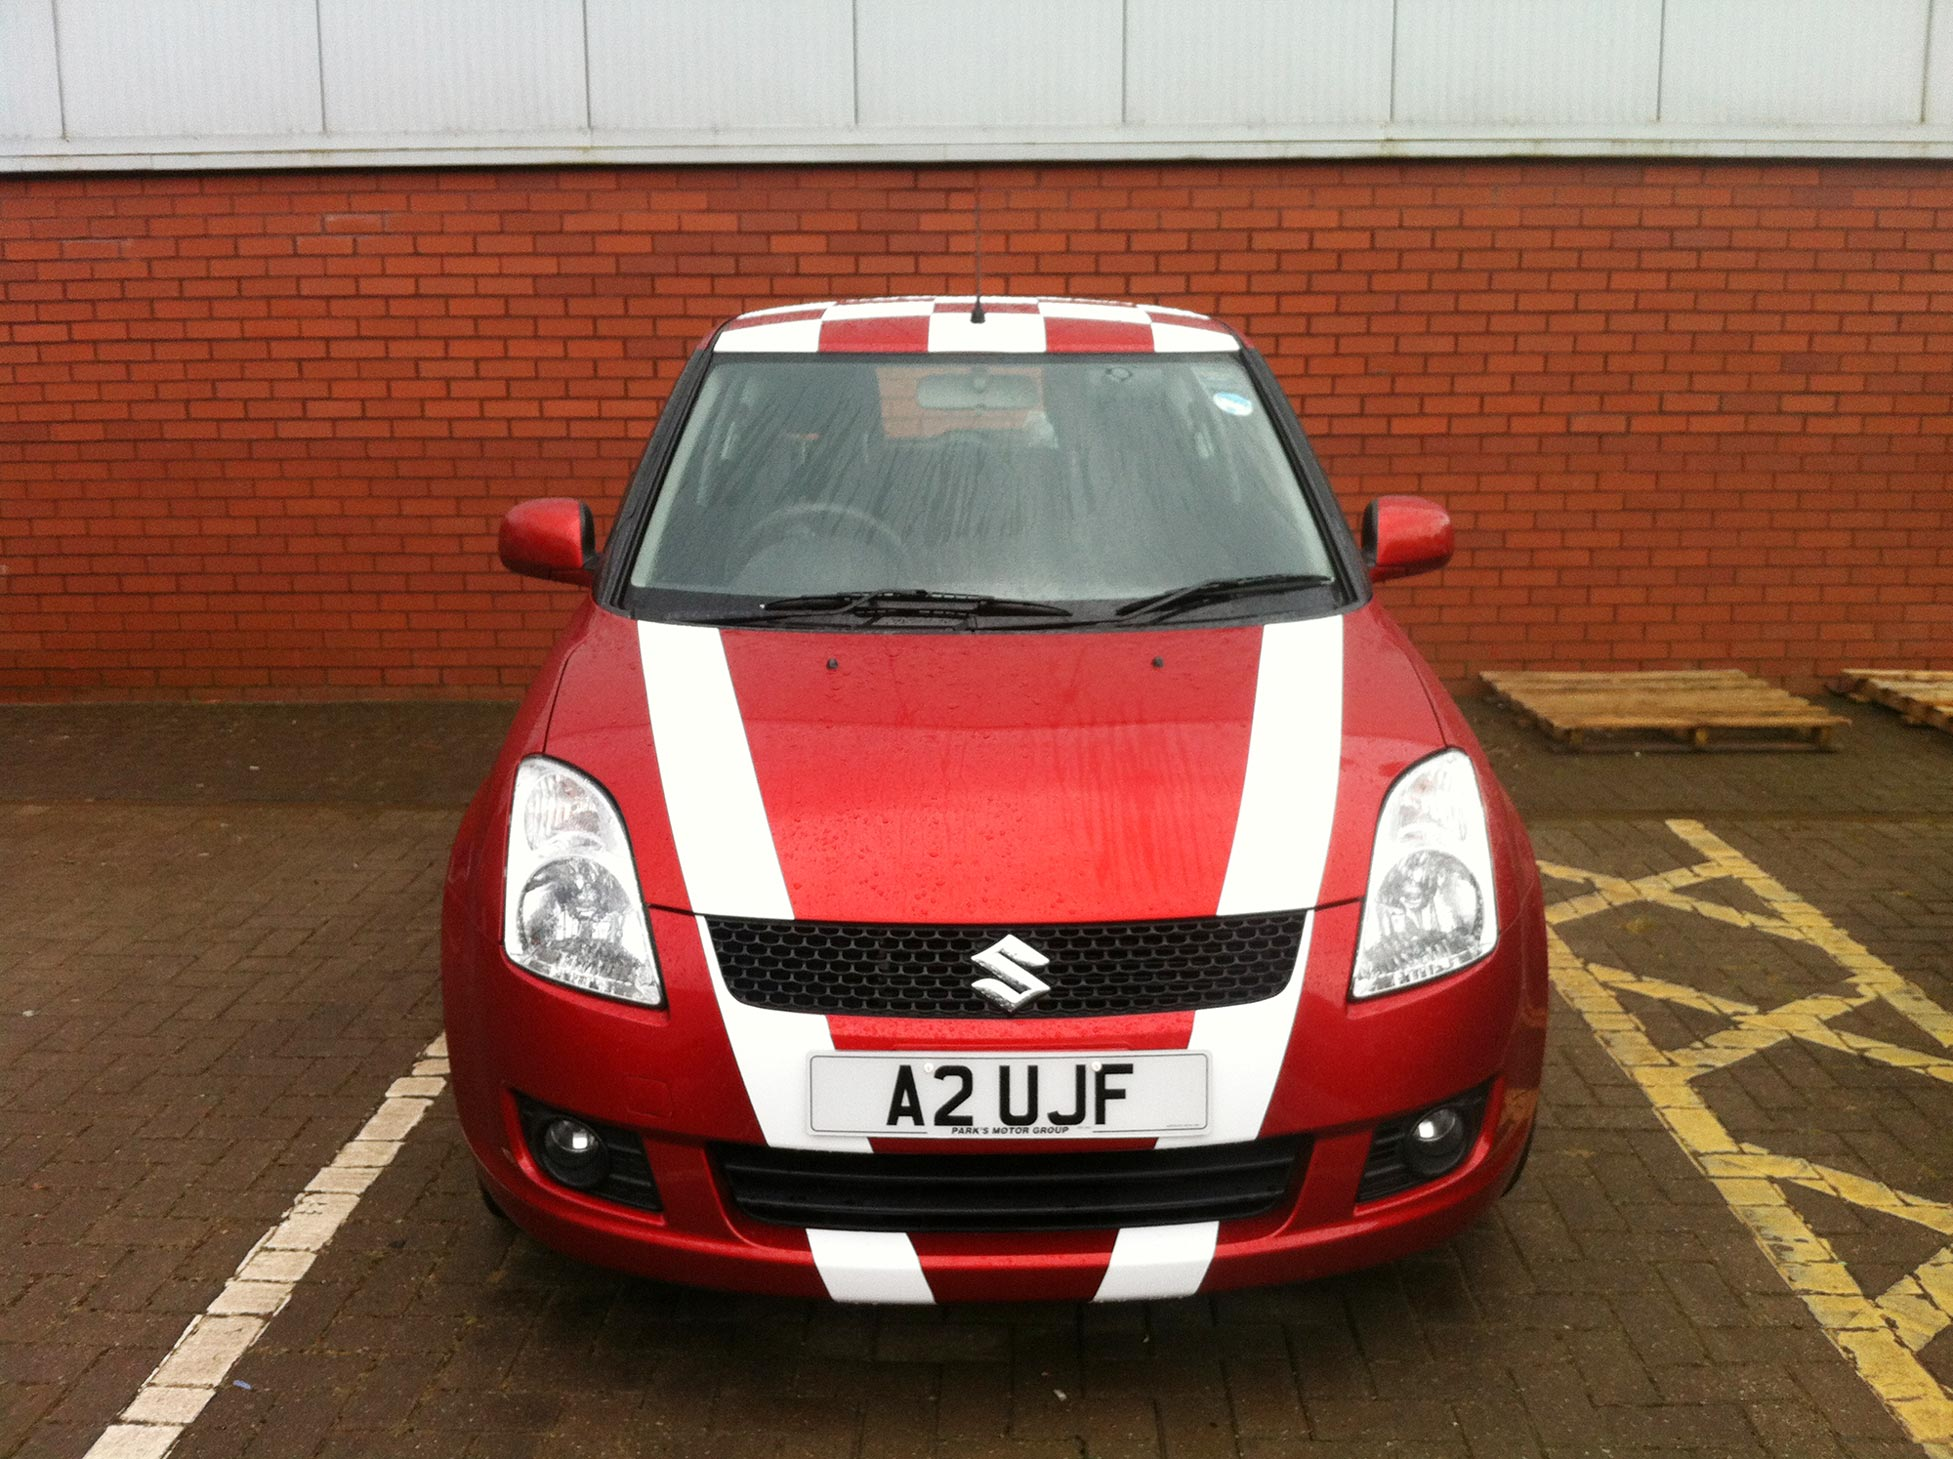 Suzuki Swift Sport Stripes In Gloss White Vinyl And Chequered Roof